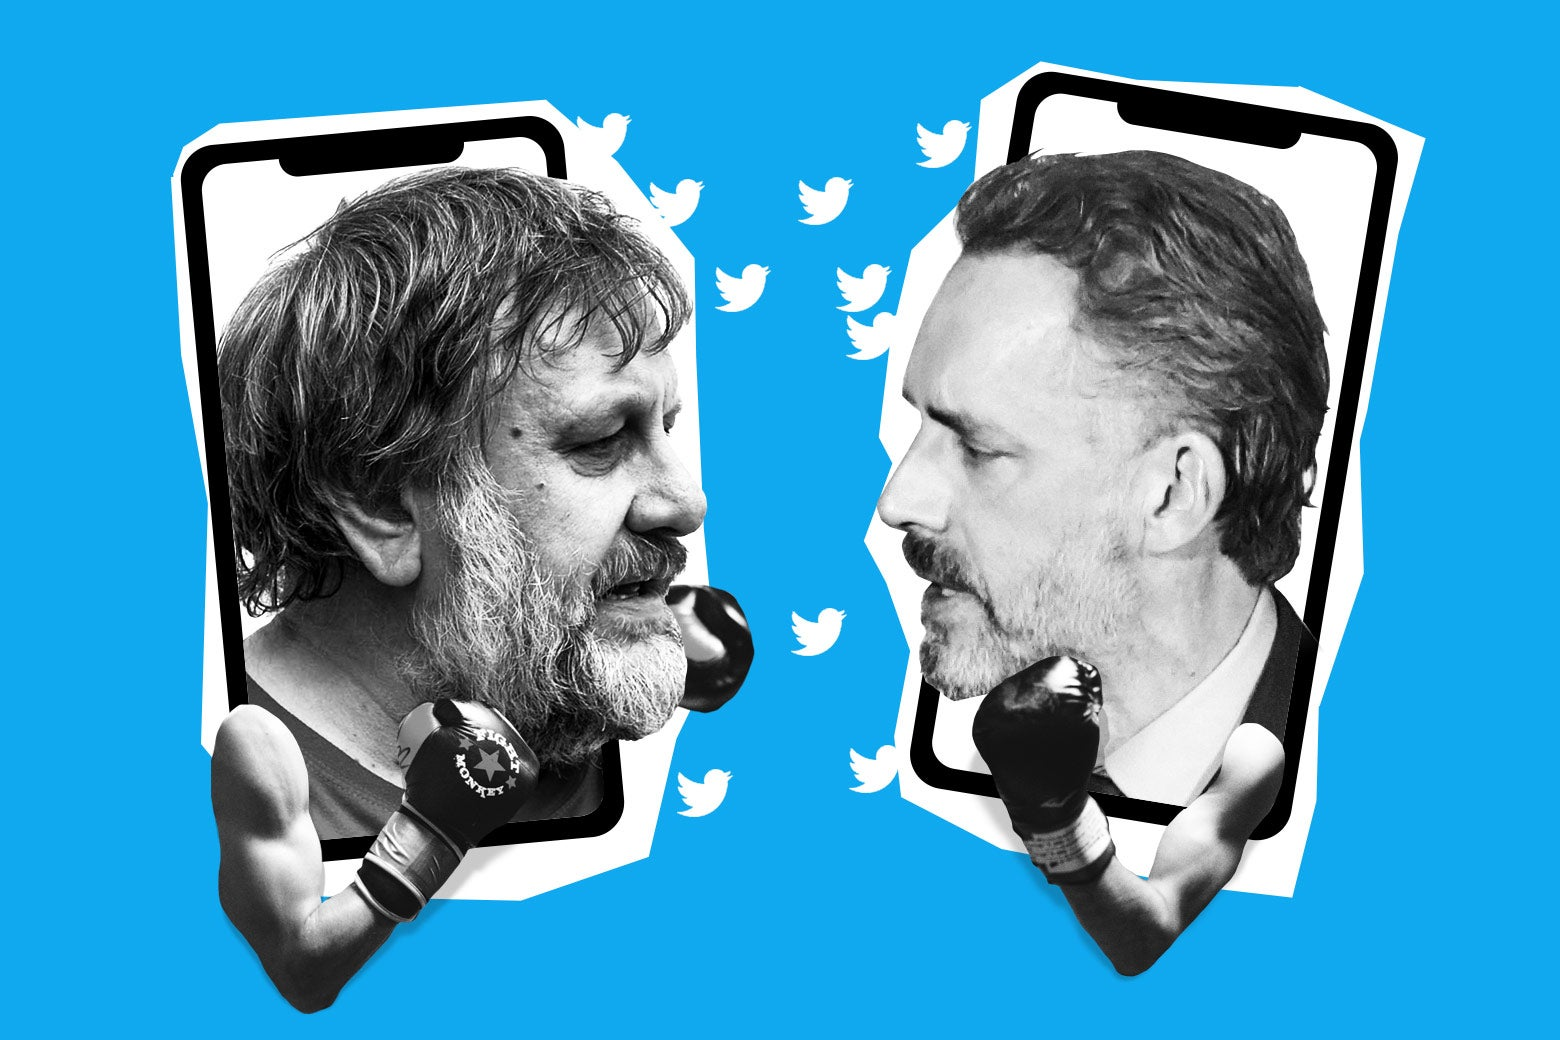 Slavoj Žižek and Jordan Peterson head-to-head, wearing boxing gloves. Their faces are emerging from smartphone screens, with Twitter birds flitting between them.